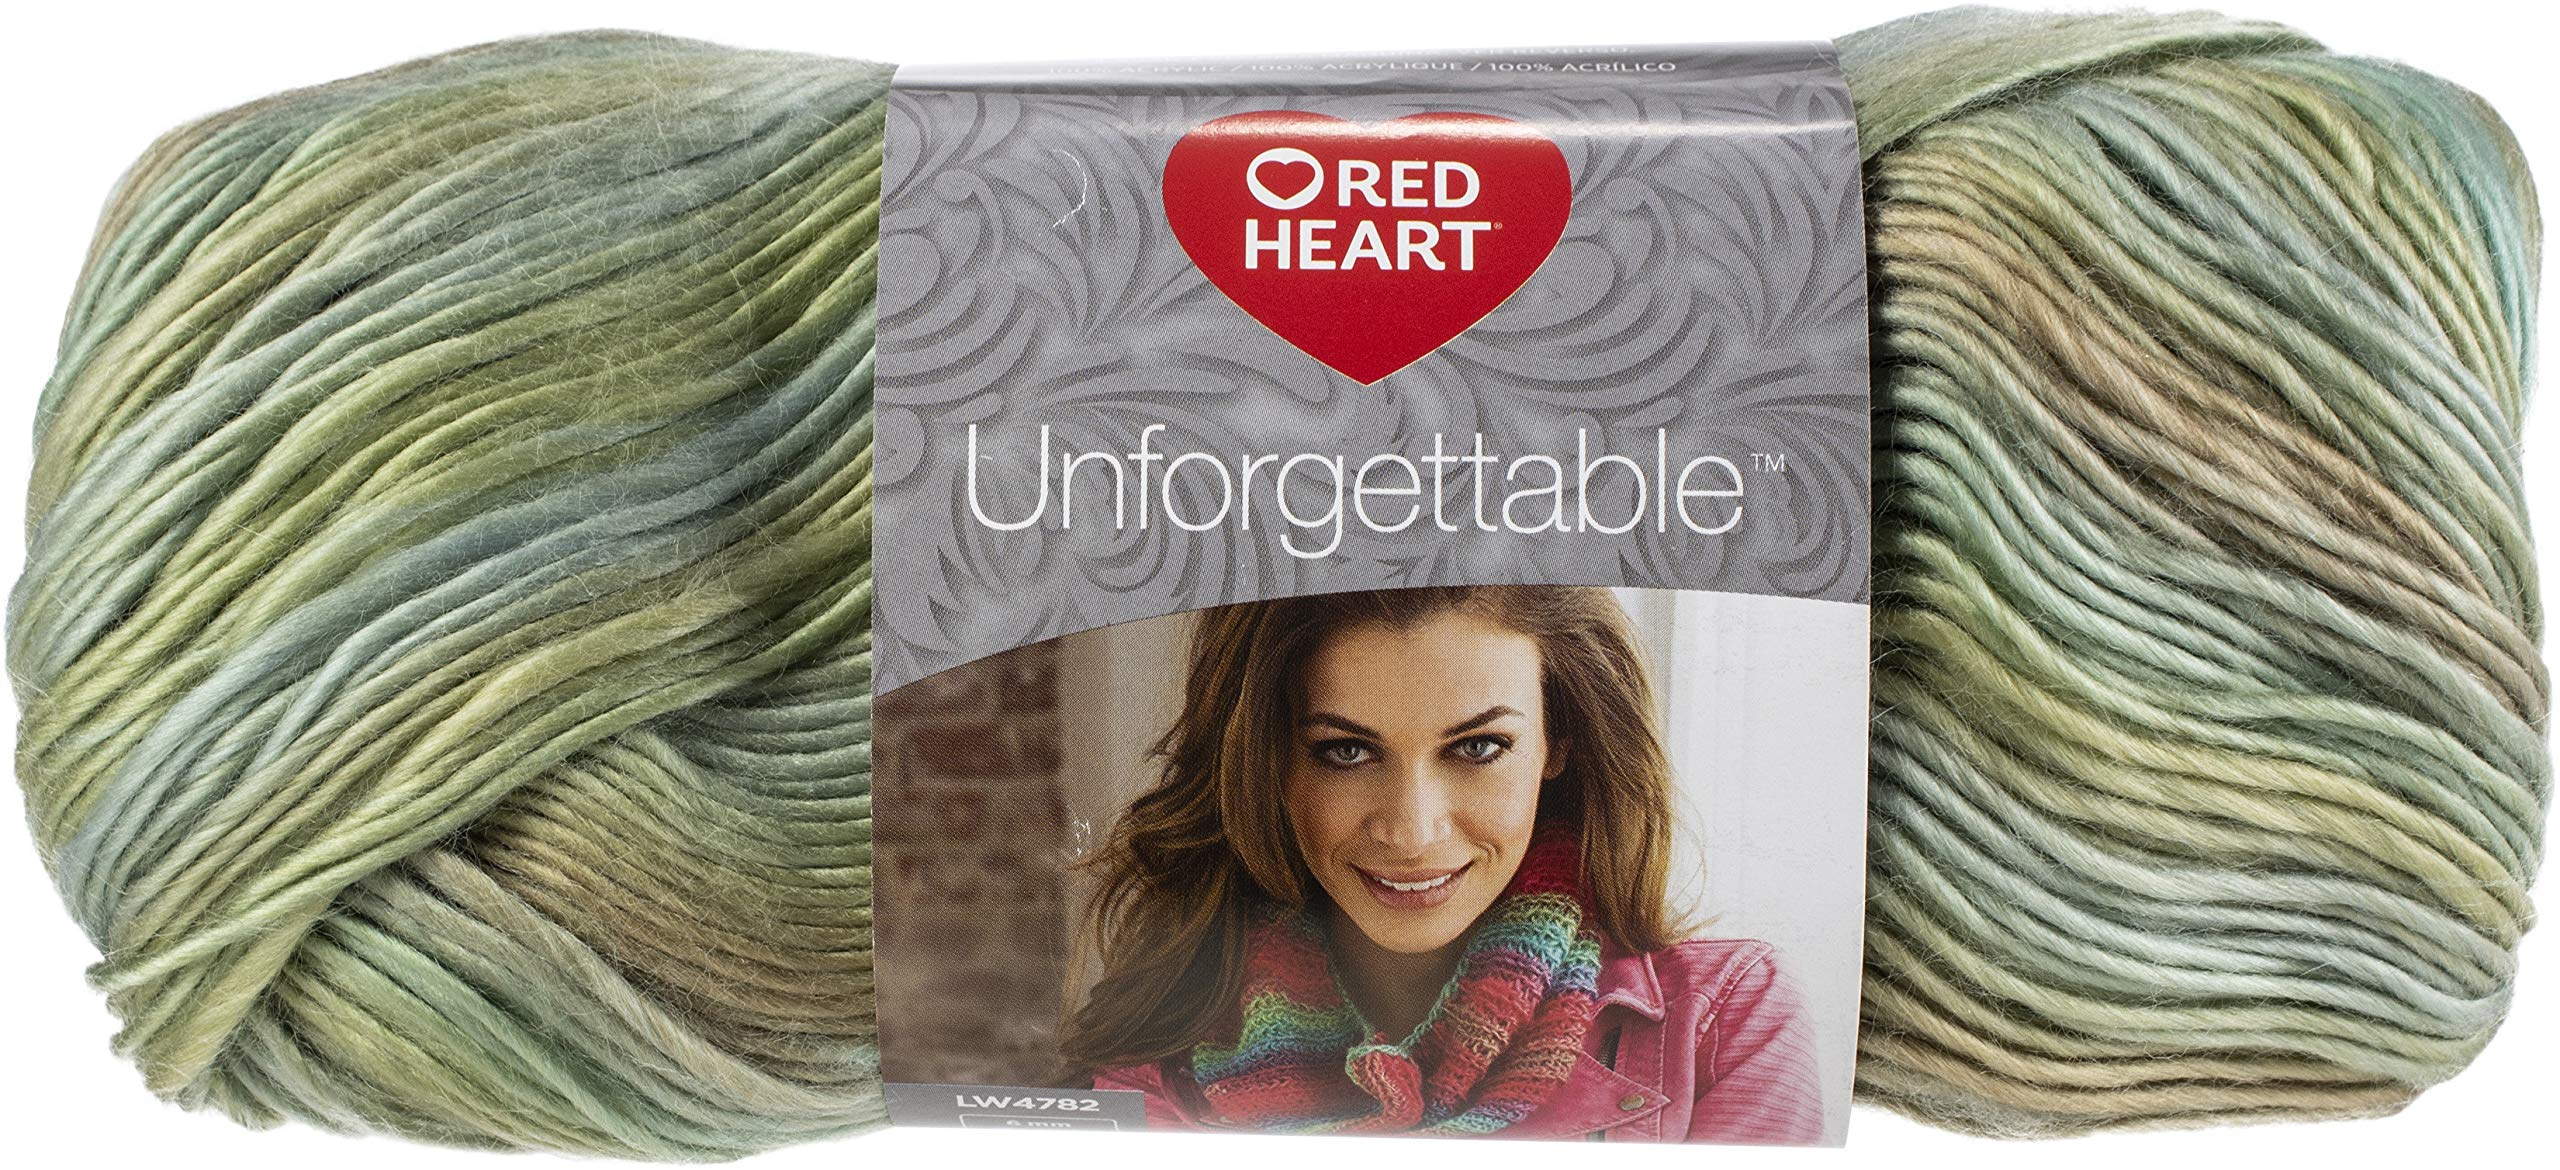 Red Heart 99428 Boutique Unforgettable Yarn 12/Pk-Meadow, Pack by Red Heart (Image #2)